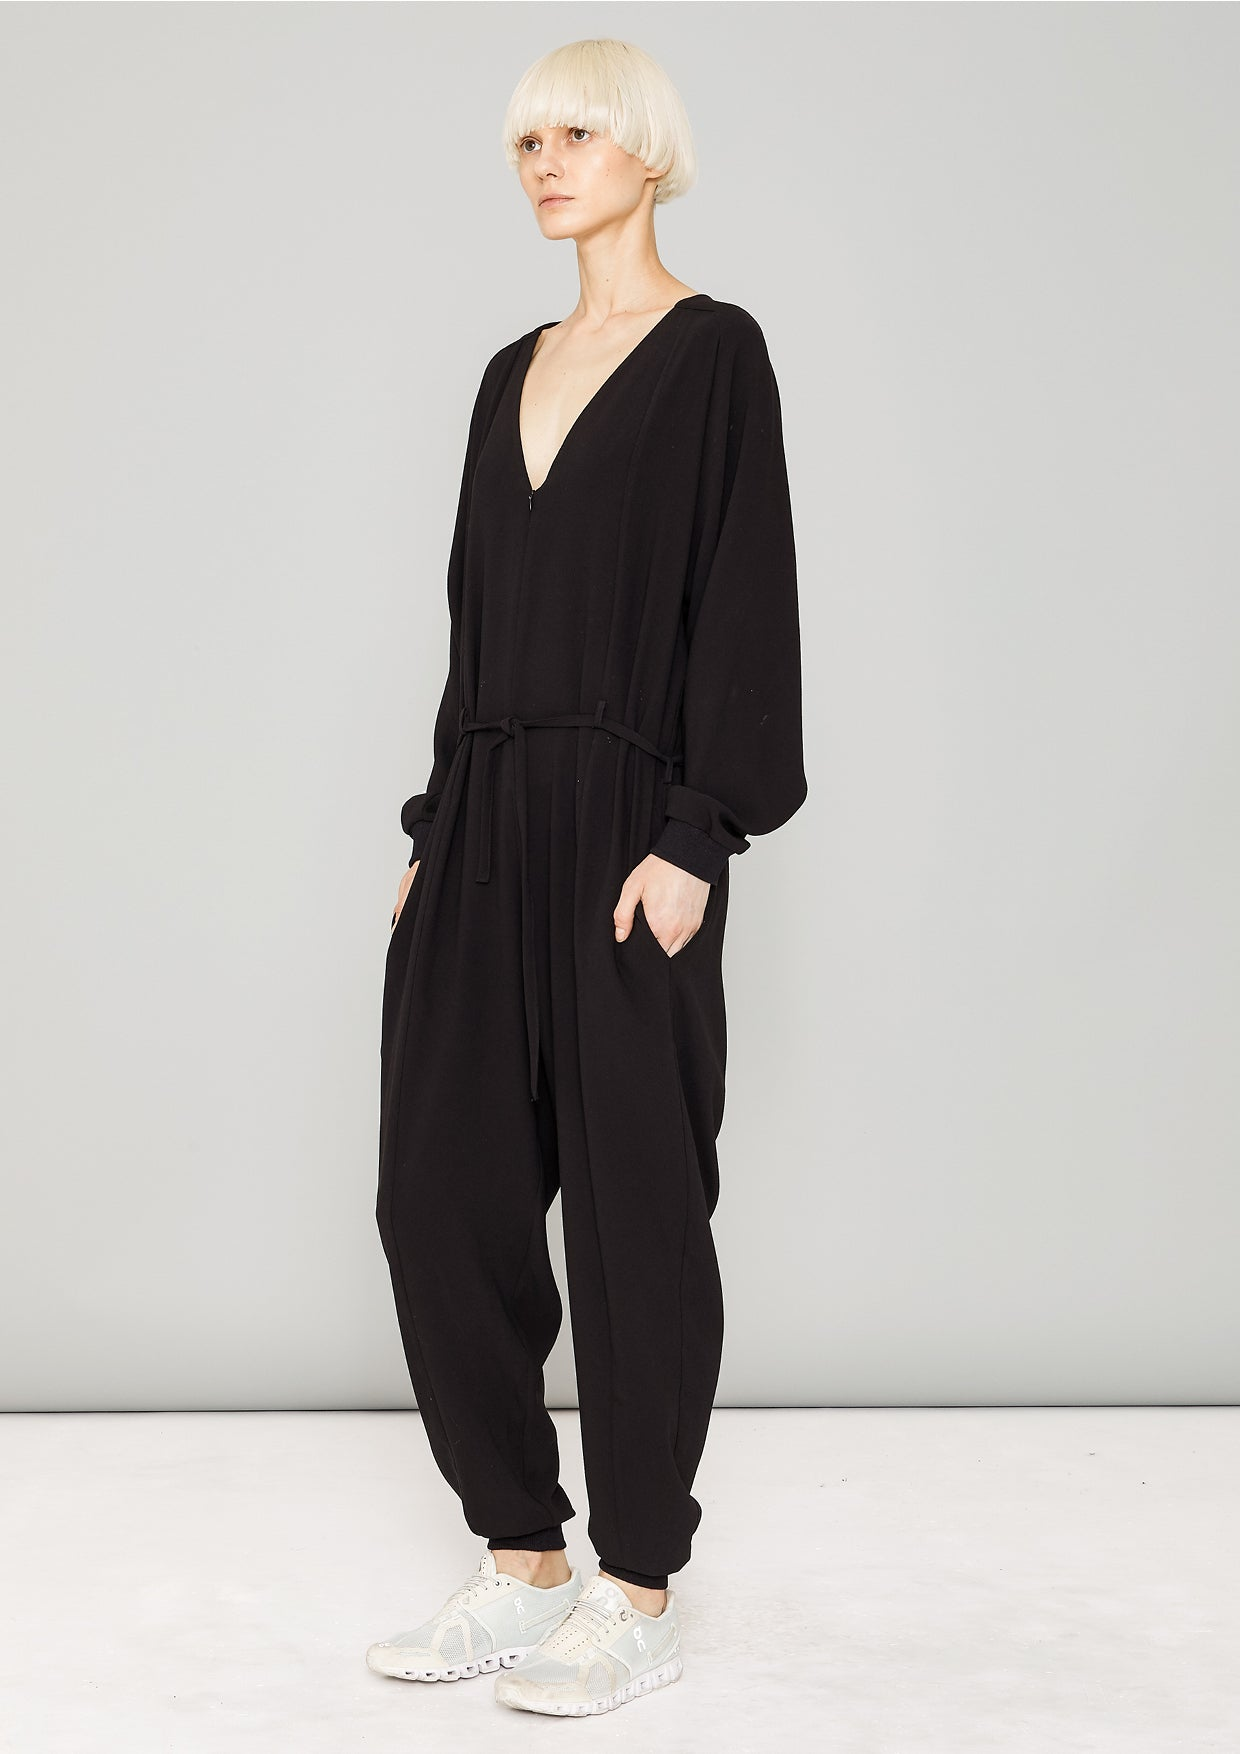 1ea2593d833b JUMPSUIT LONG OVERSIZED - HEAVY DRAPING black - BERENIK